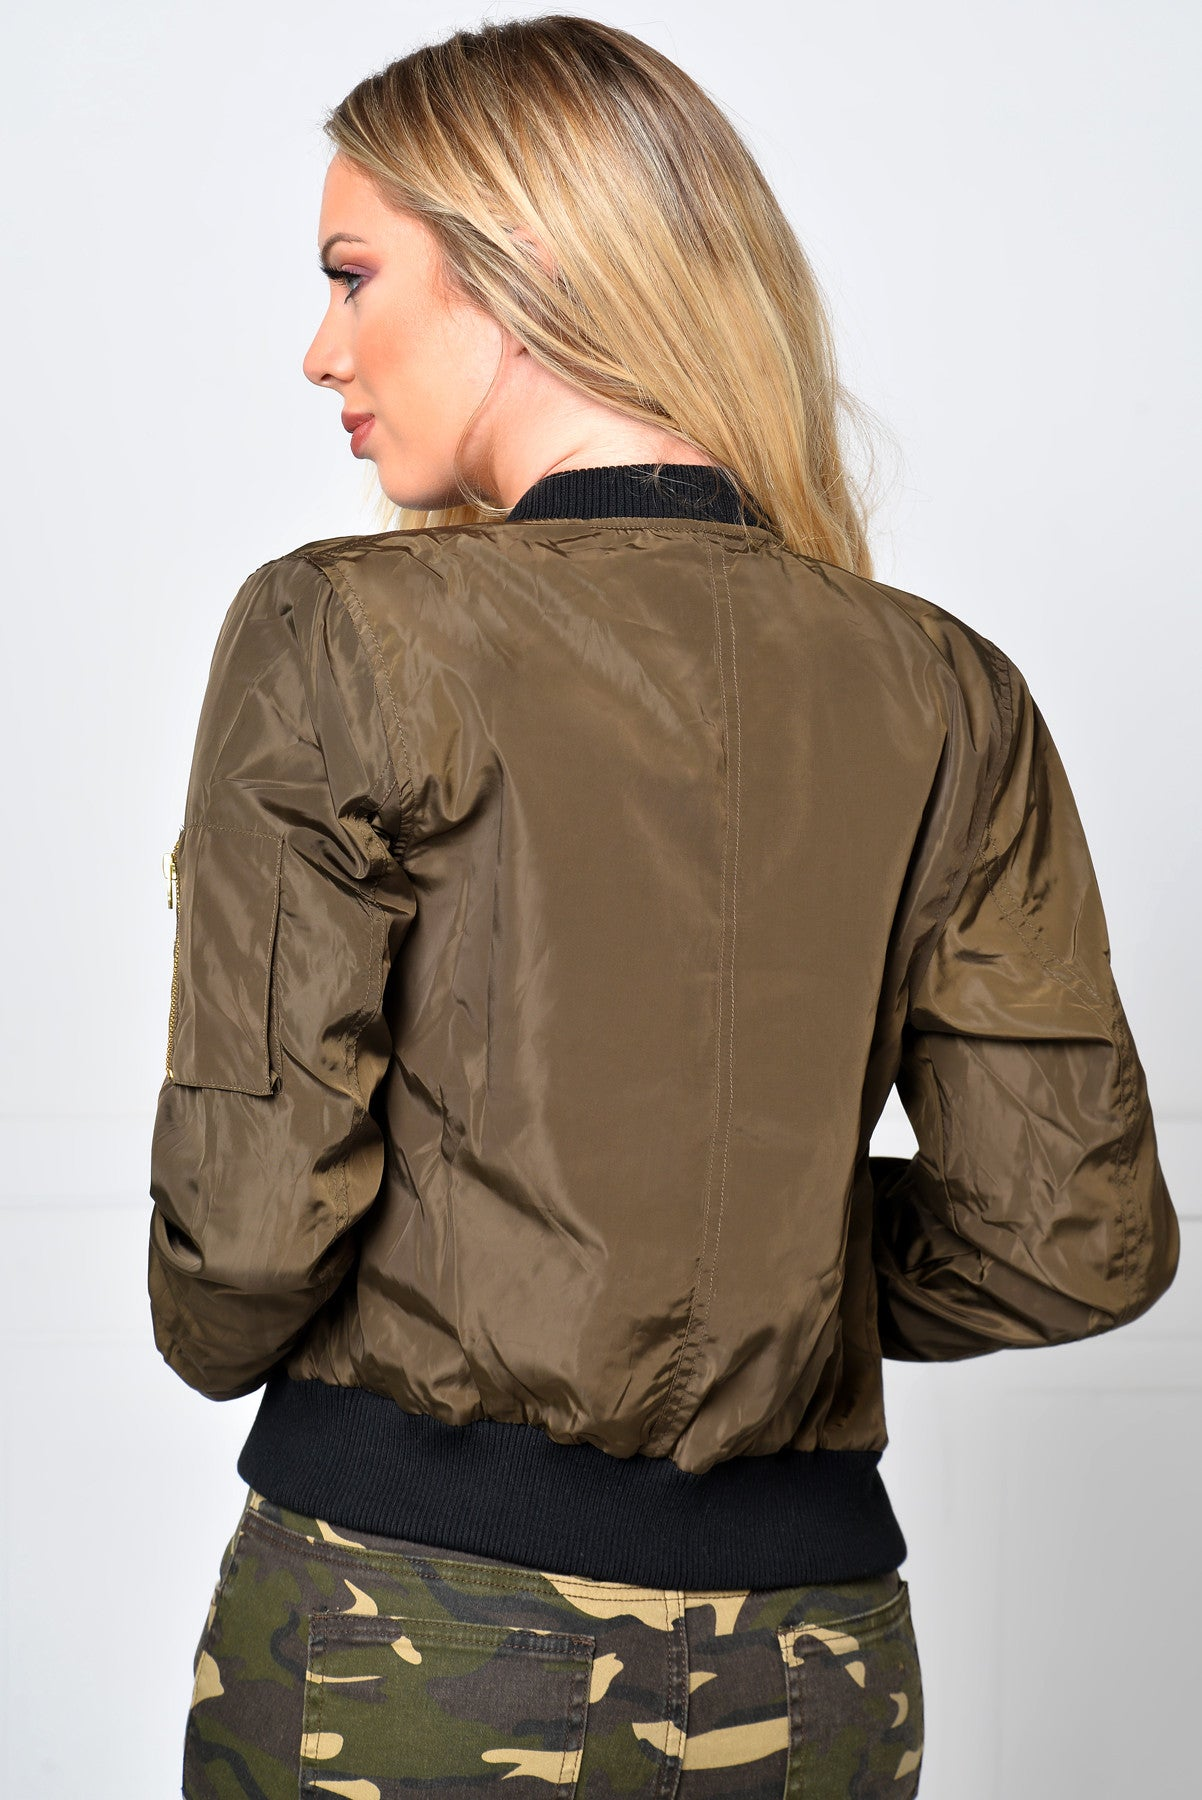 Limitless Olive Bomber Jacket - Fashion Effect Store  - 2